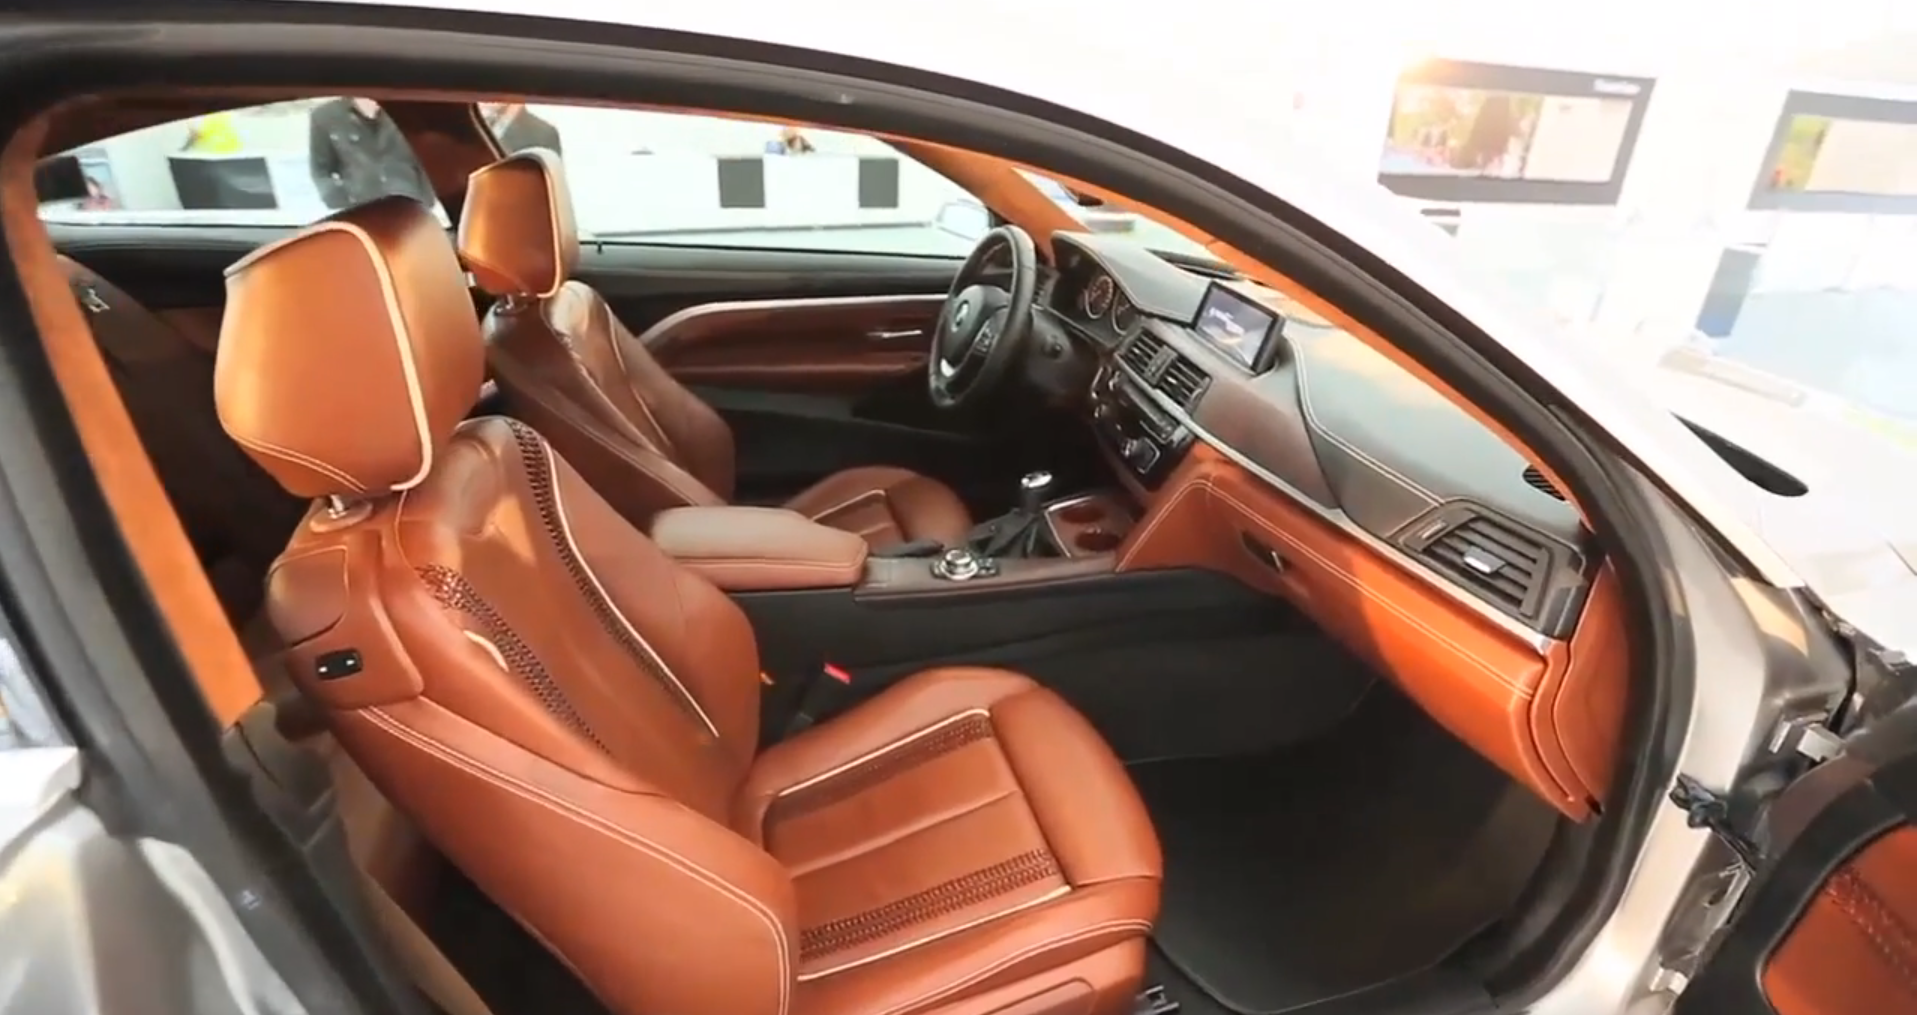 BMW Showcases The Interior Of The Upcoming Series Autoevolution - Bmw 4 series interior